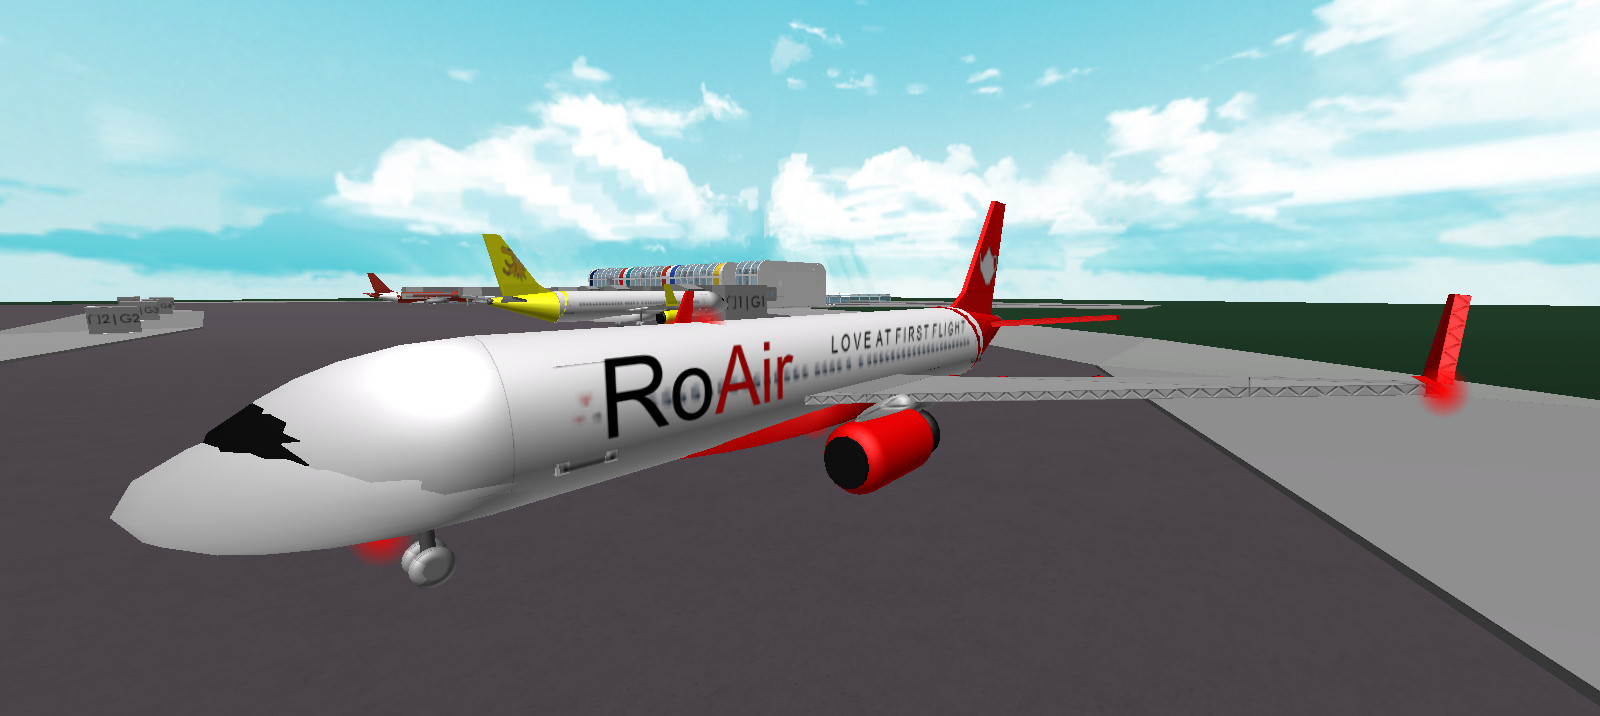 Roair The Roblox Airline Industry Wiki Fandom Powered By Wikia